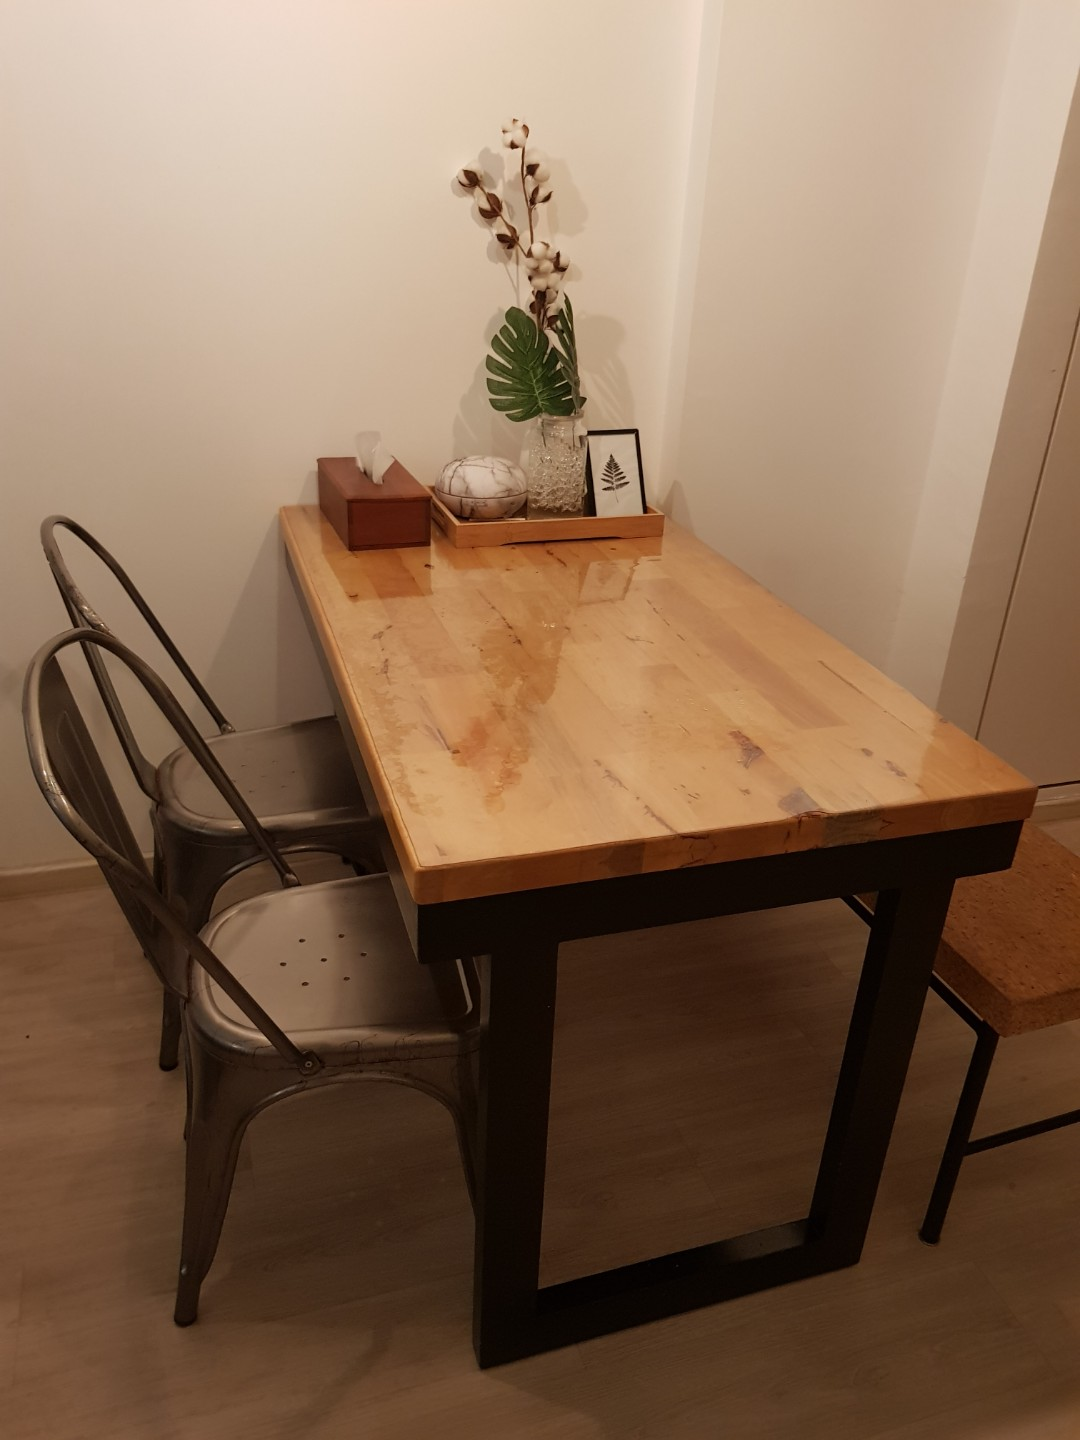 Hari Raya Clearance Butcher Block Dining Table Only Furniture Tables Chairs On Carousell